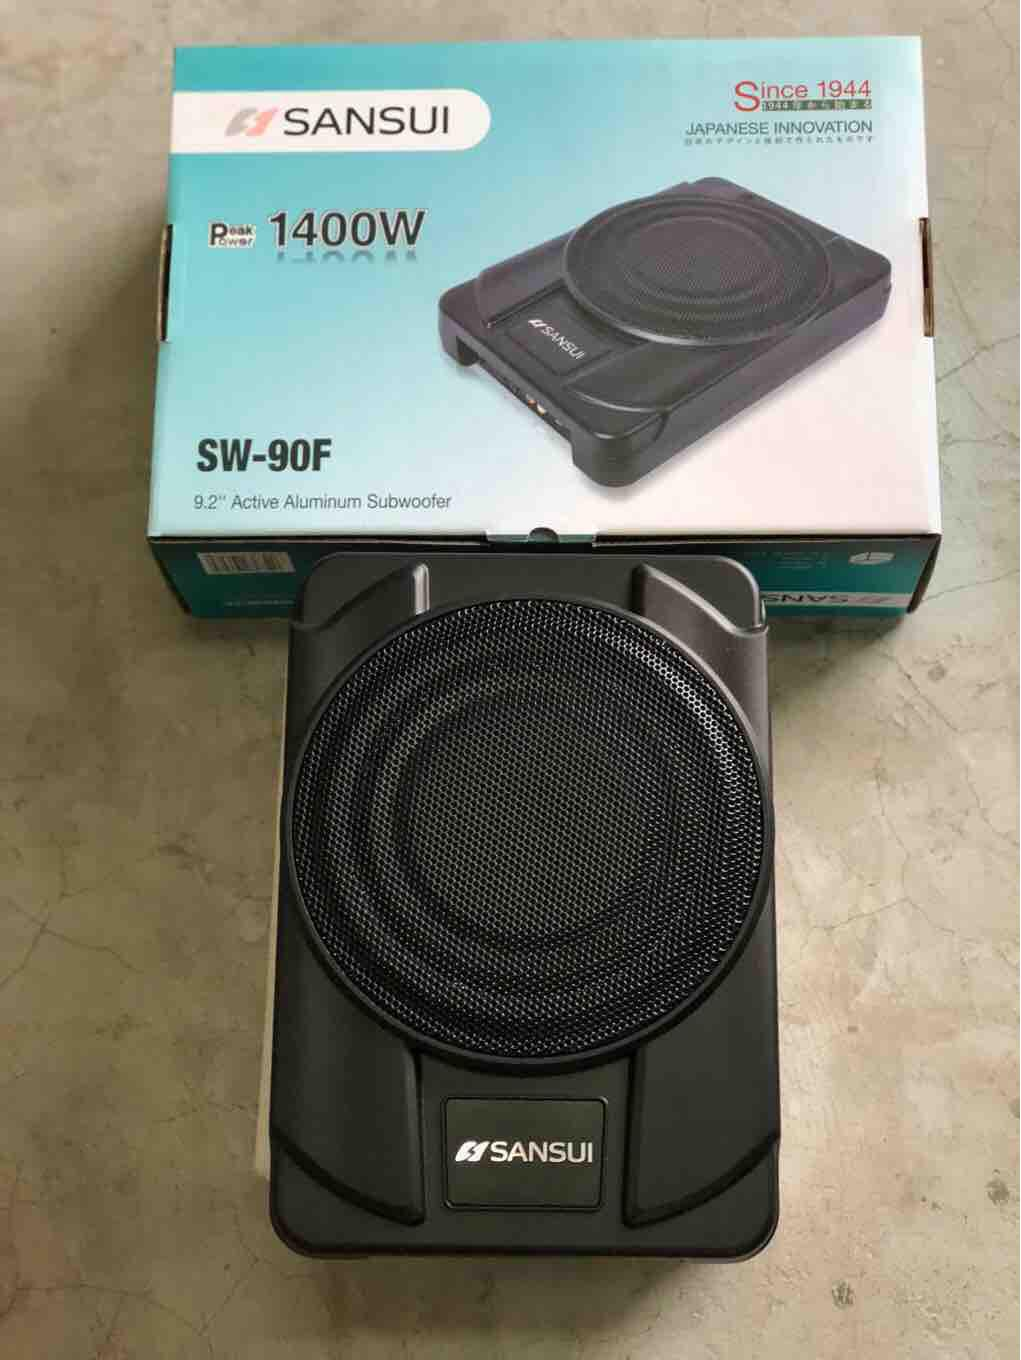 Car Subwoofers For Sale Subwoofer Online Brands Prices Kit Power Aktif Reviews In Philippines